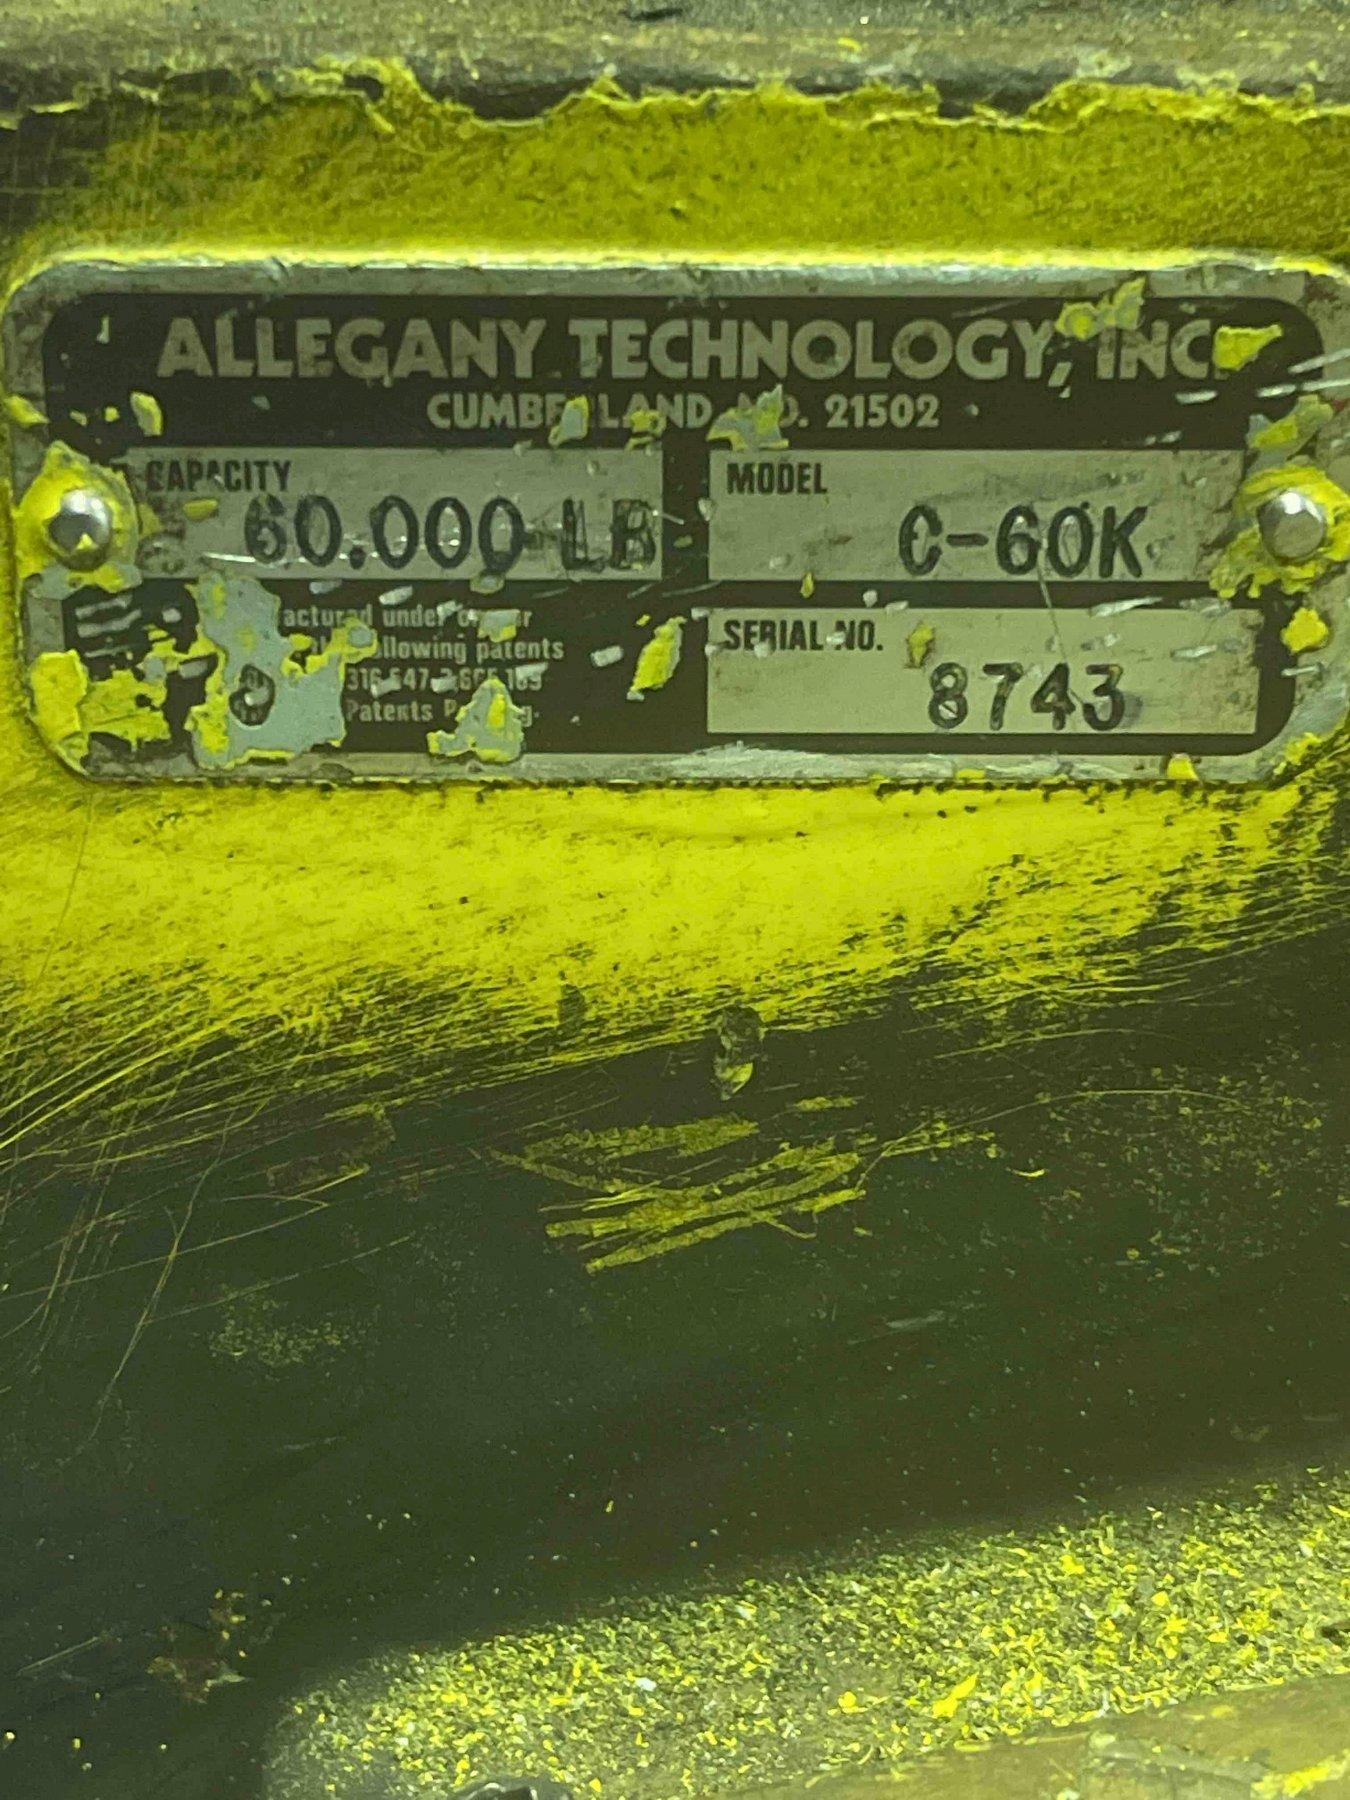 alleany Technology 60,000 LB Crane Scale 模型 C-60K S/N 8743 with remote control